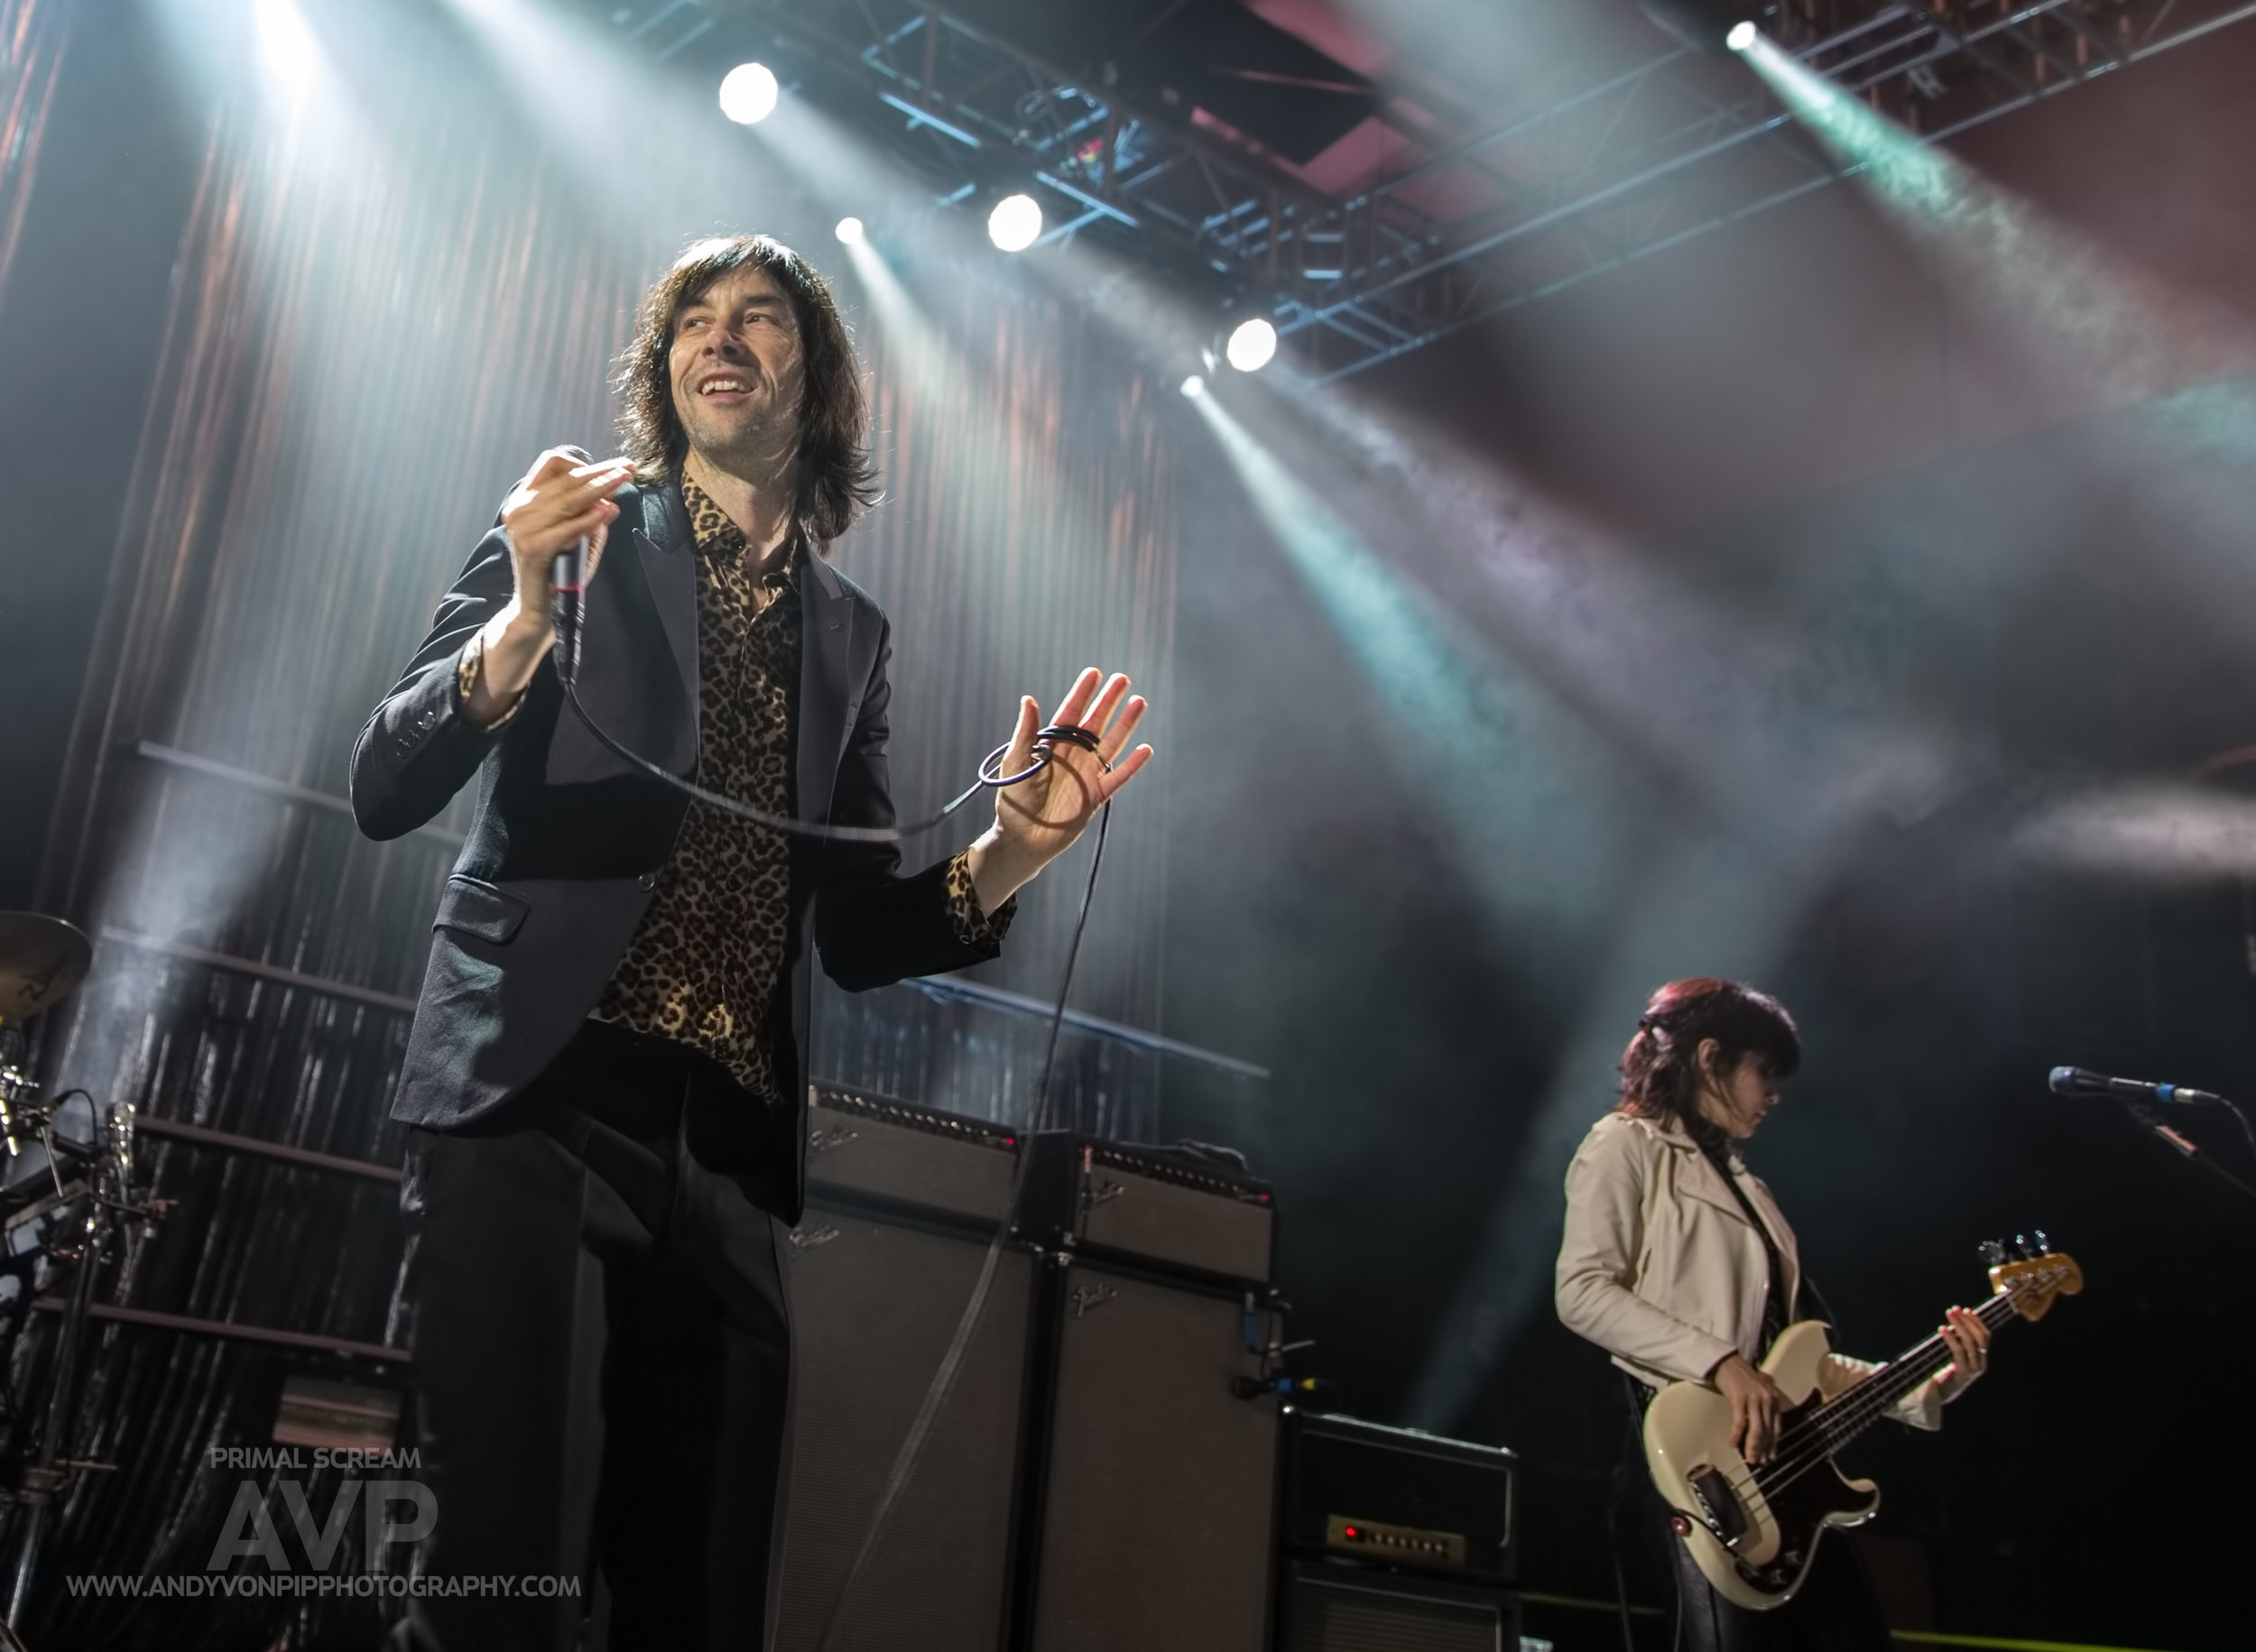 02-PRIMAL SCREAM - LIVERPOOL - 27.11.16 -Andy Von Pip.jpg